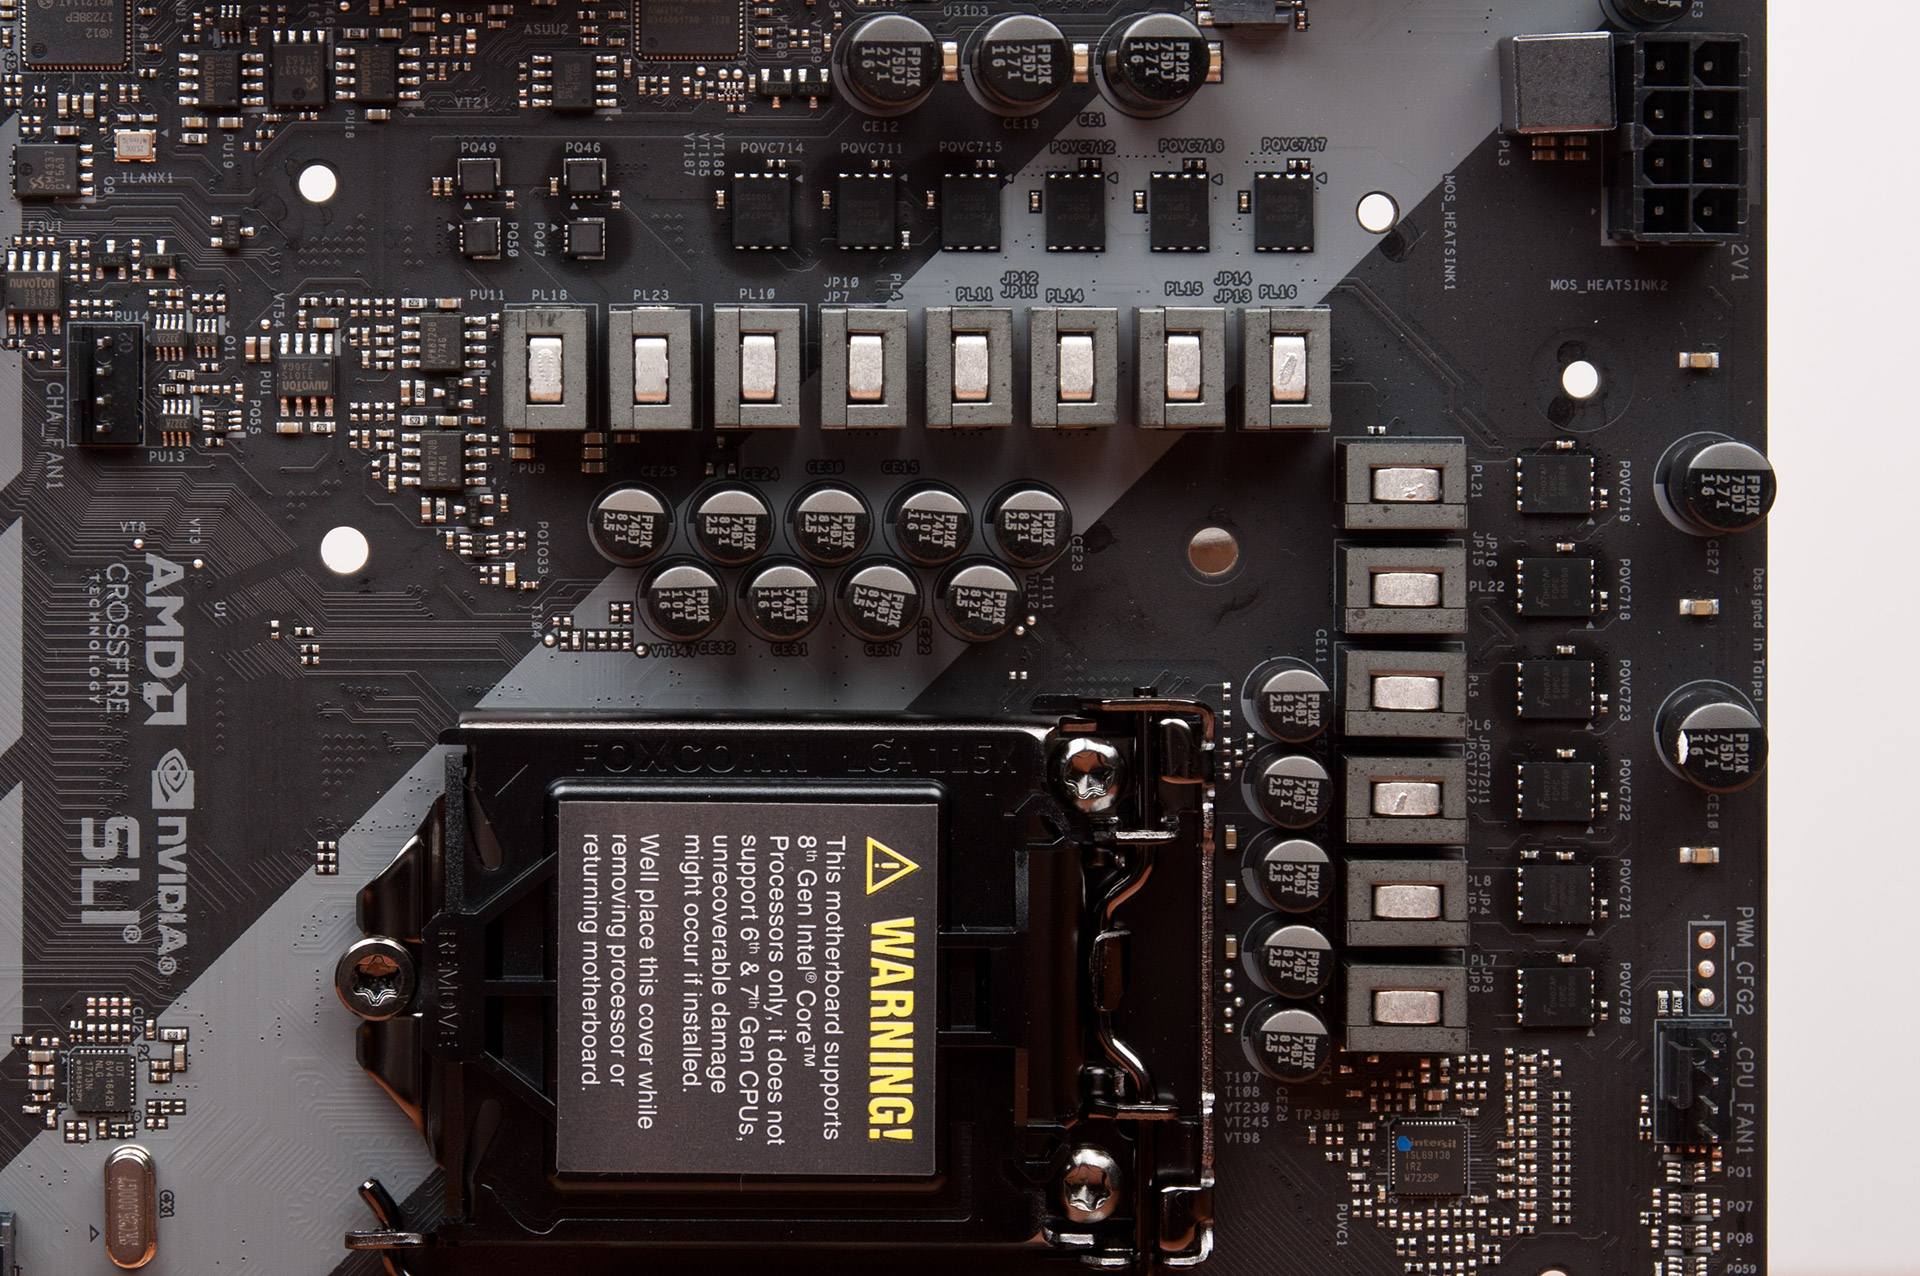 Z370 / Z390 VRM Discussion Thread - Page 122 - Overclock net